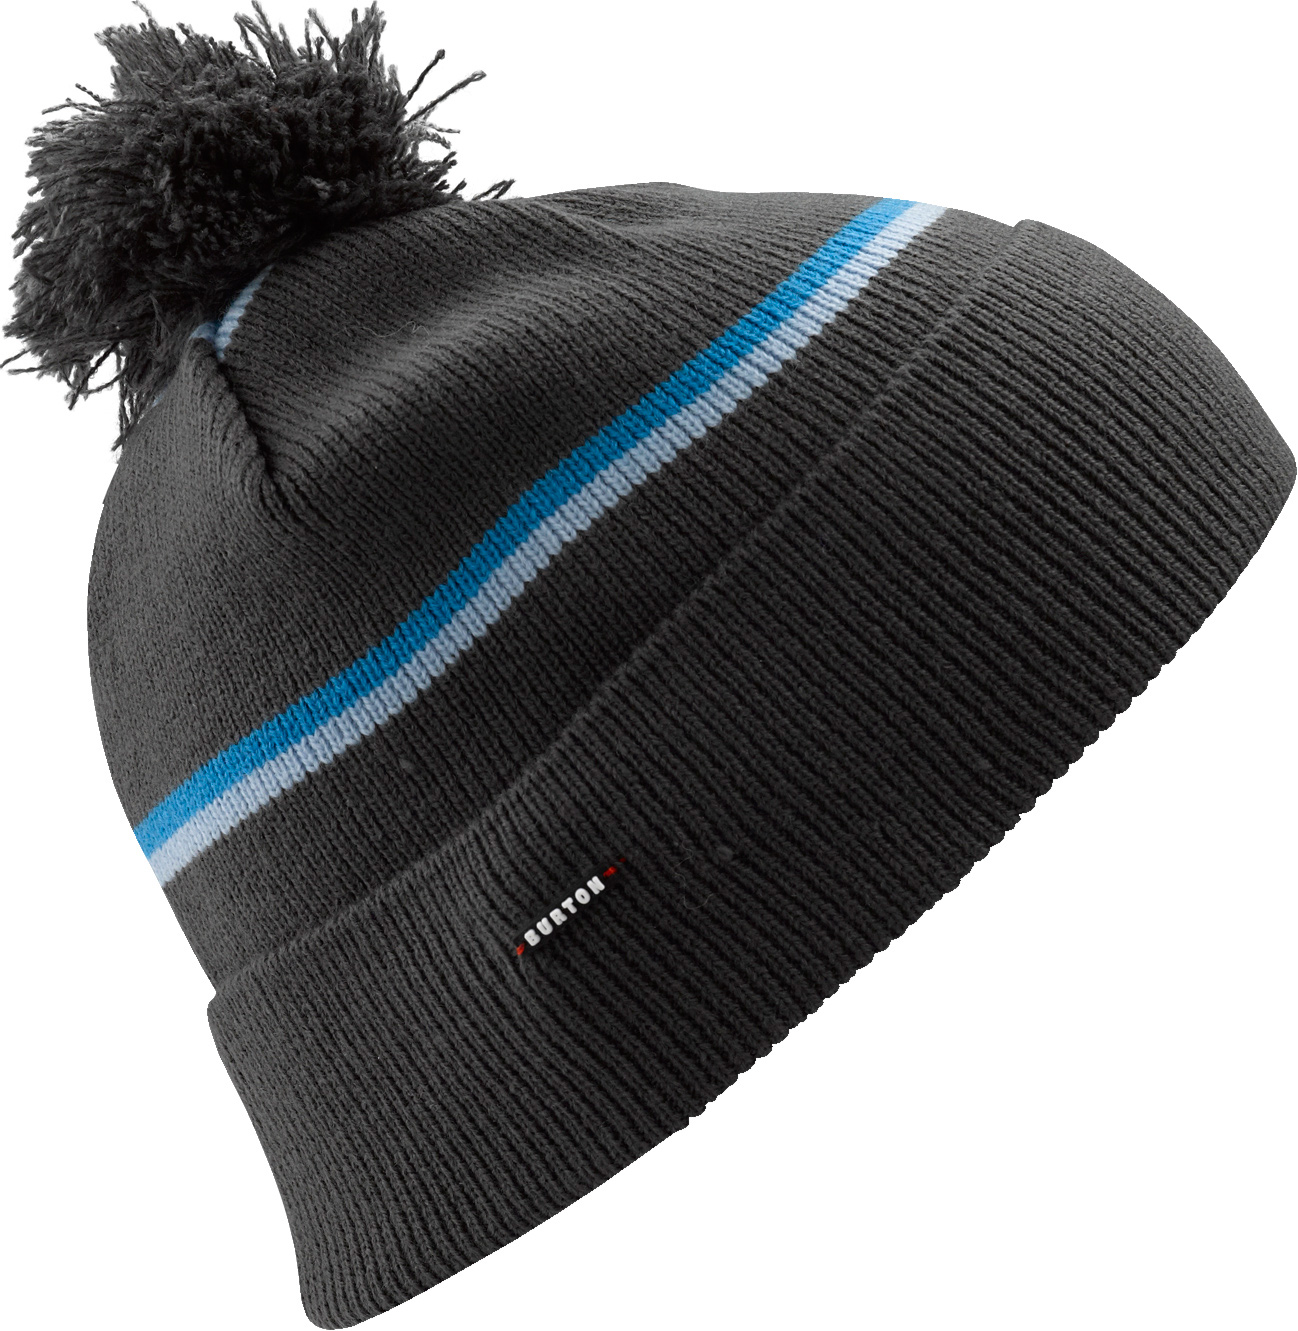 Snowboard Key Features of the Burton Marcos Beanie: 100% Acrylic Multi Stripe Fold Up Beanie with Pom Skully Fit - $15.95